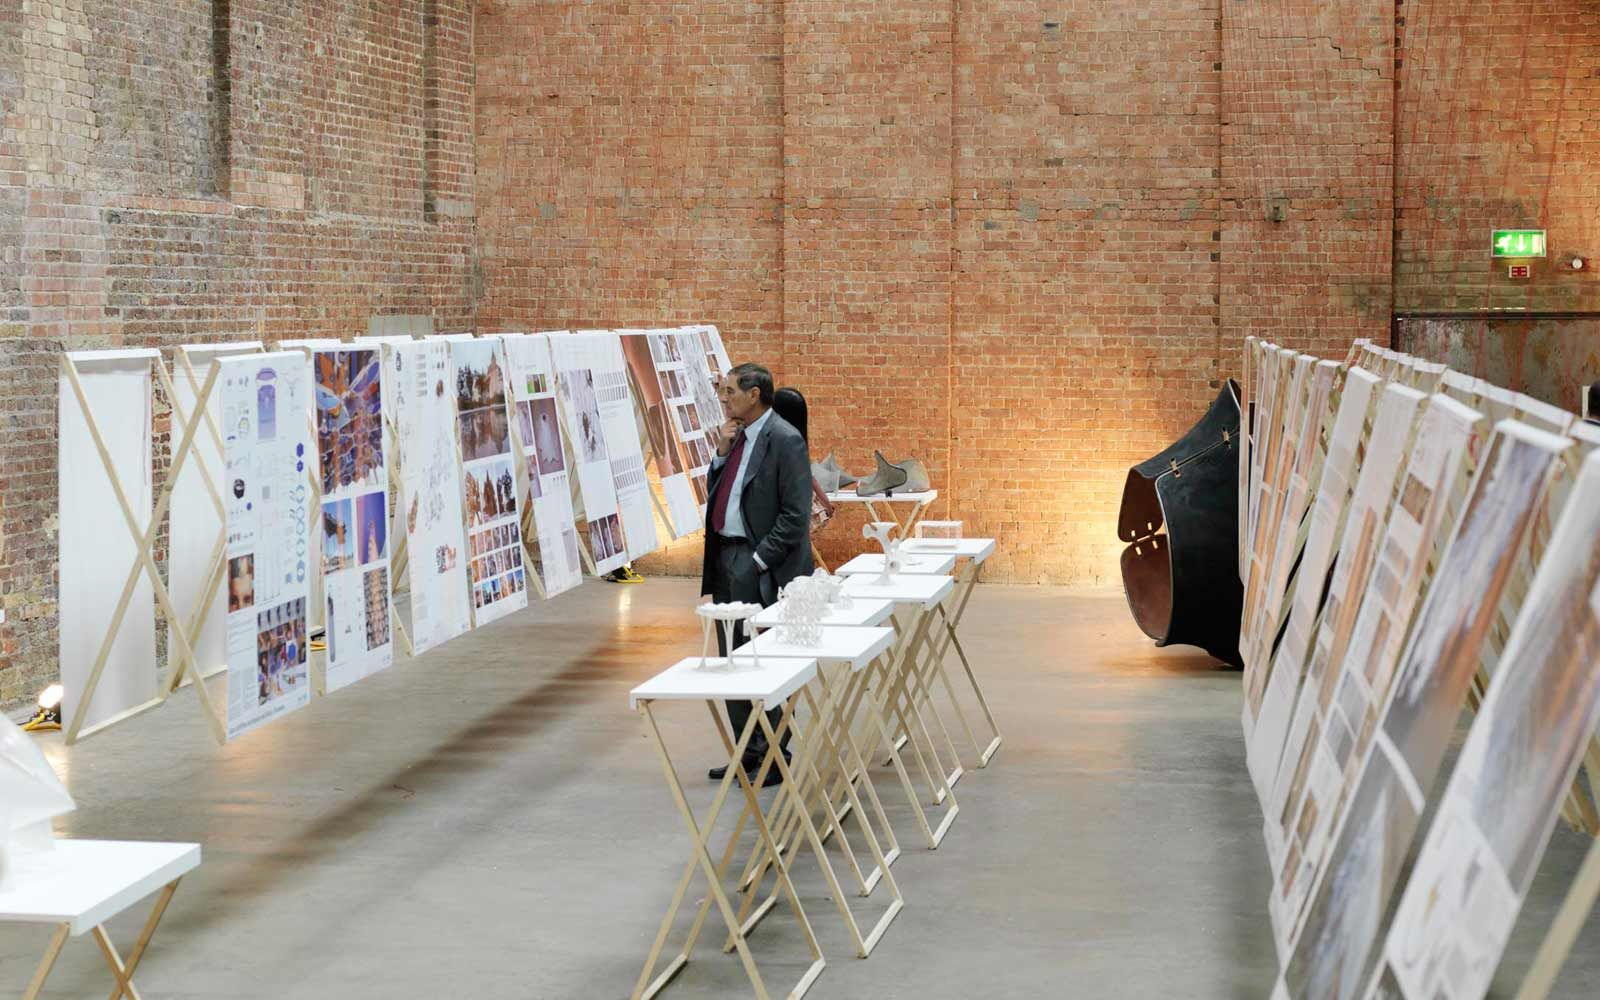 Marvelous Architecture Exhibition Layout   Google Search | Unit 2   Inspiration For  My Design Project 2014 15 | Pinterest | Exhibitions